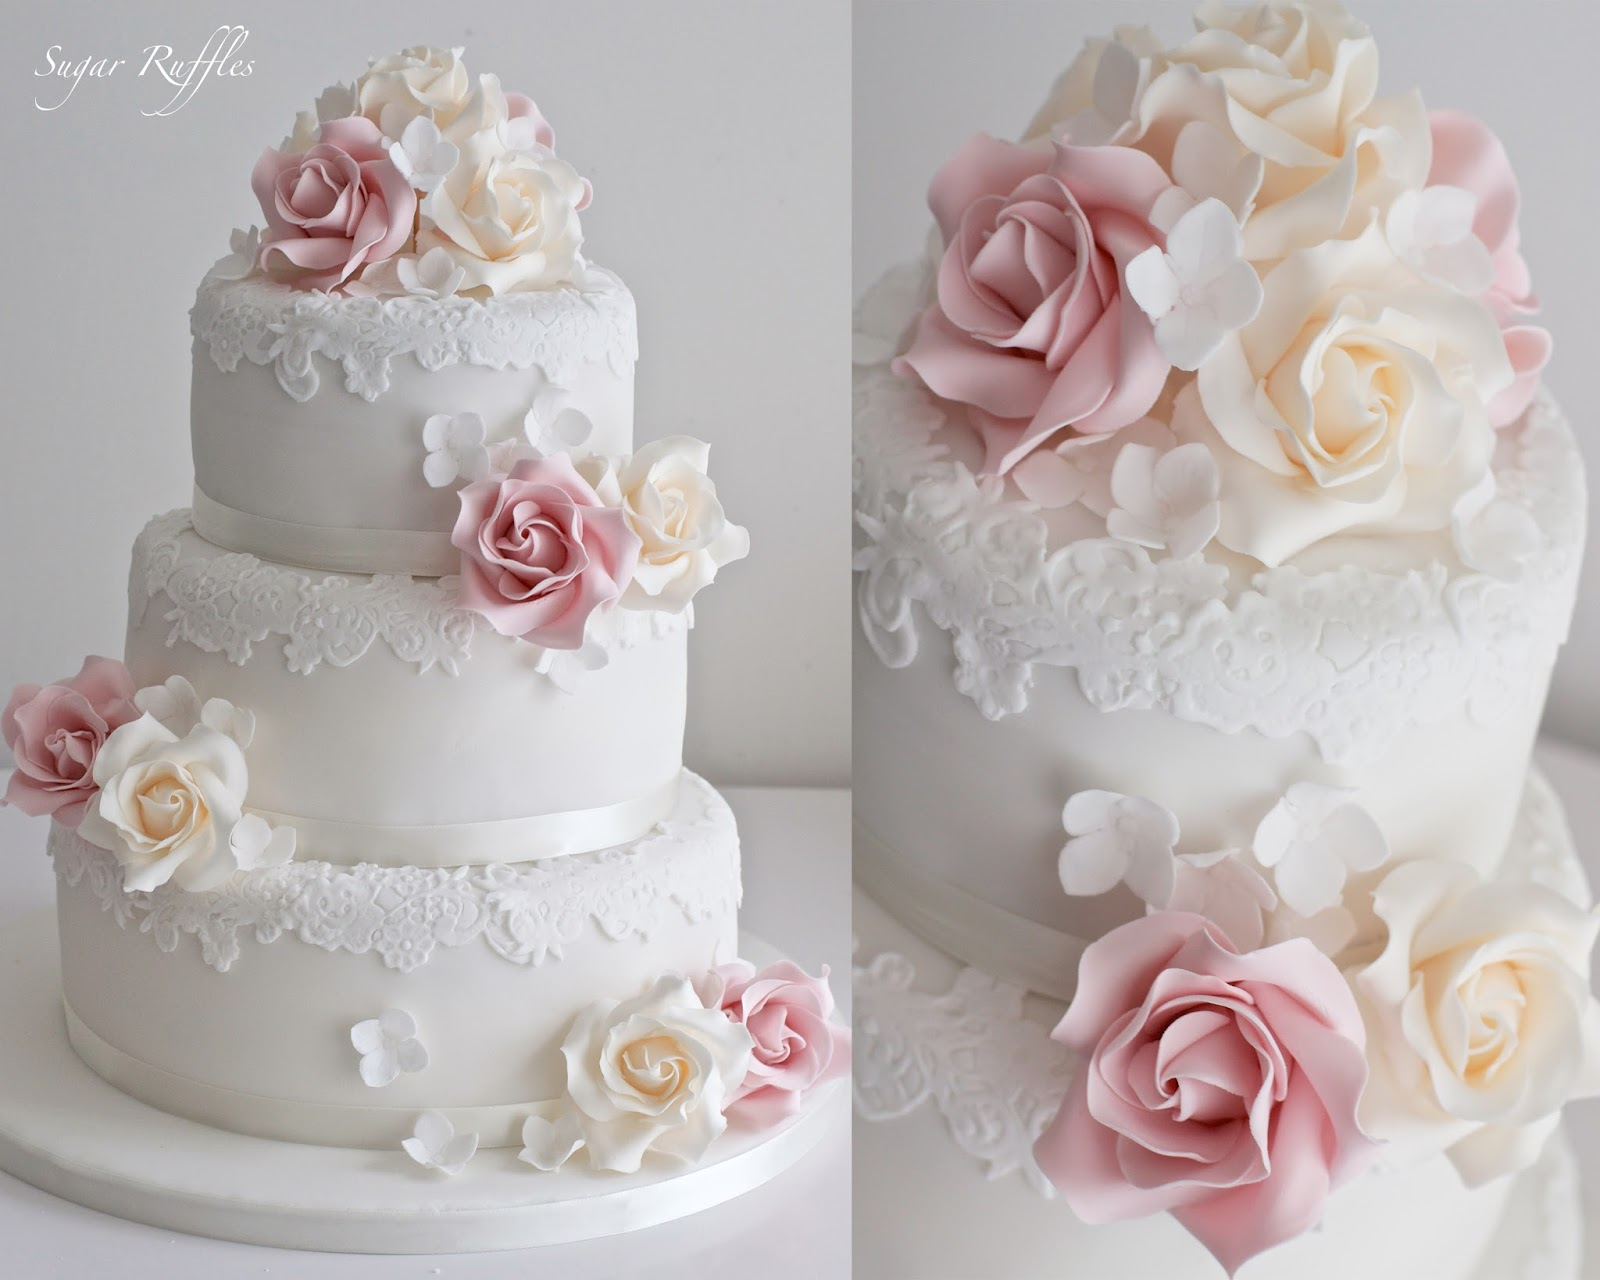 3 tier wedding cake with roses wedding cakes 10350